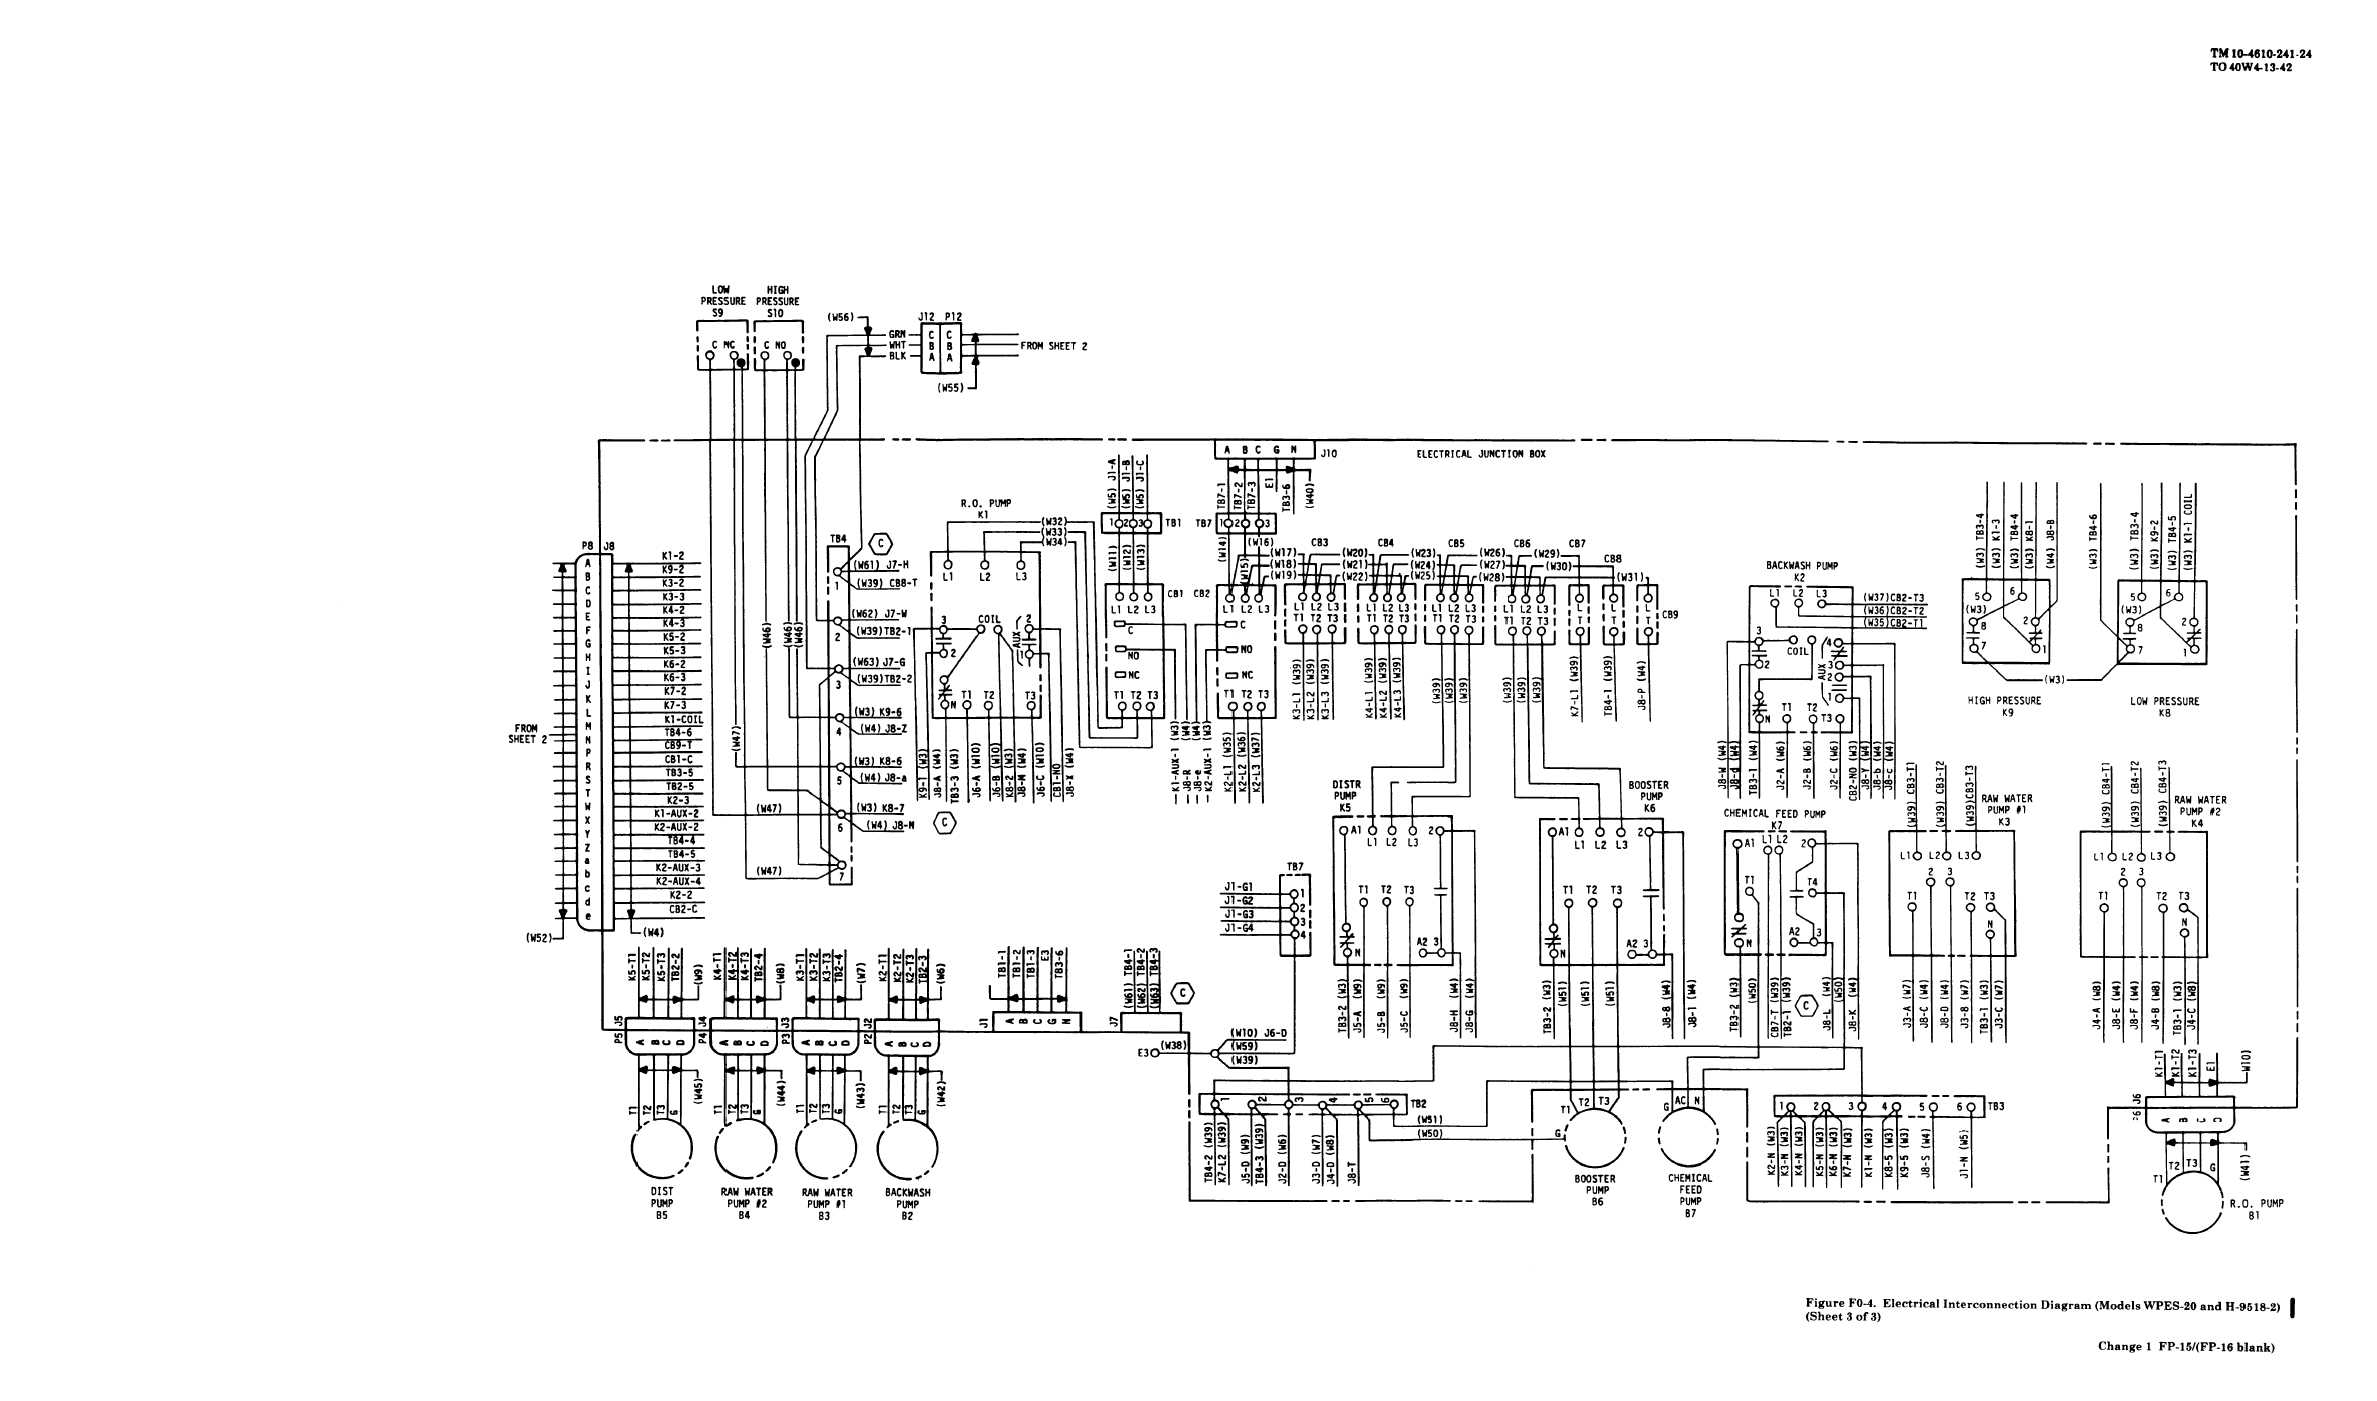 Figure Fo 4 Electrical Interconnection Diagram Sheet 3 Of 3